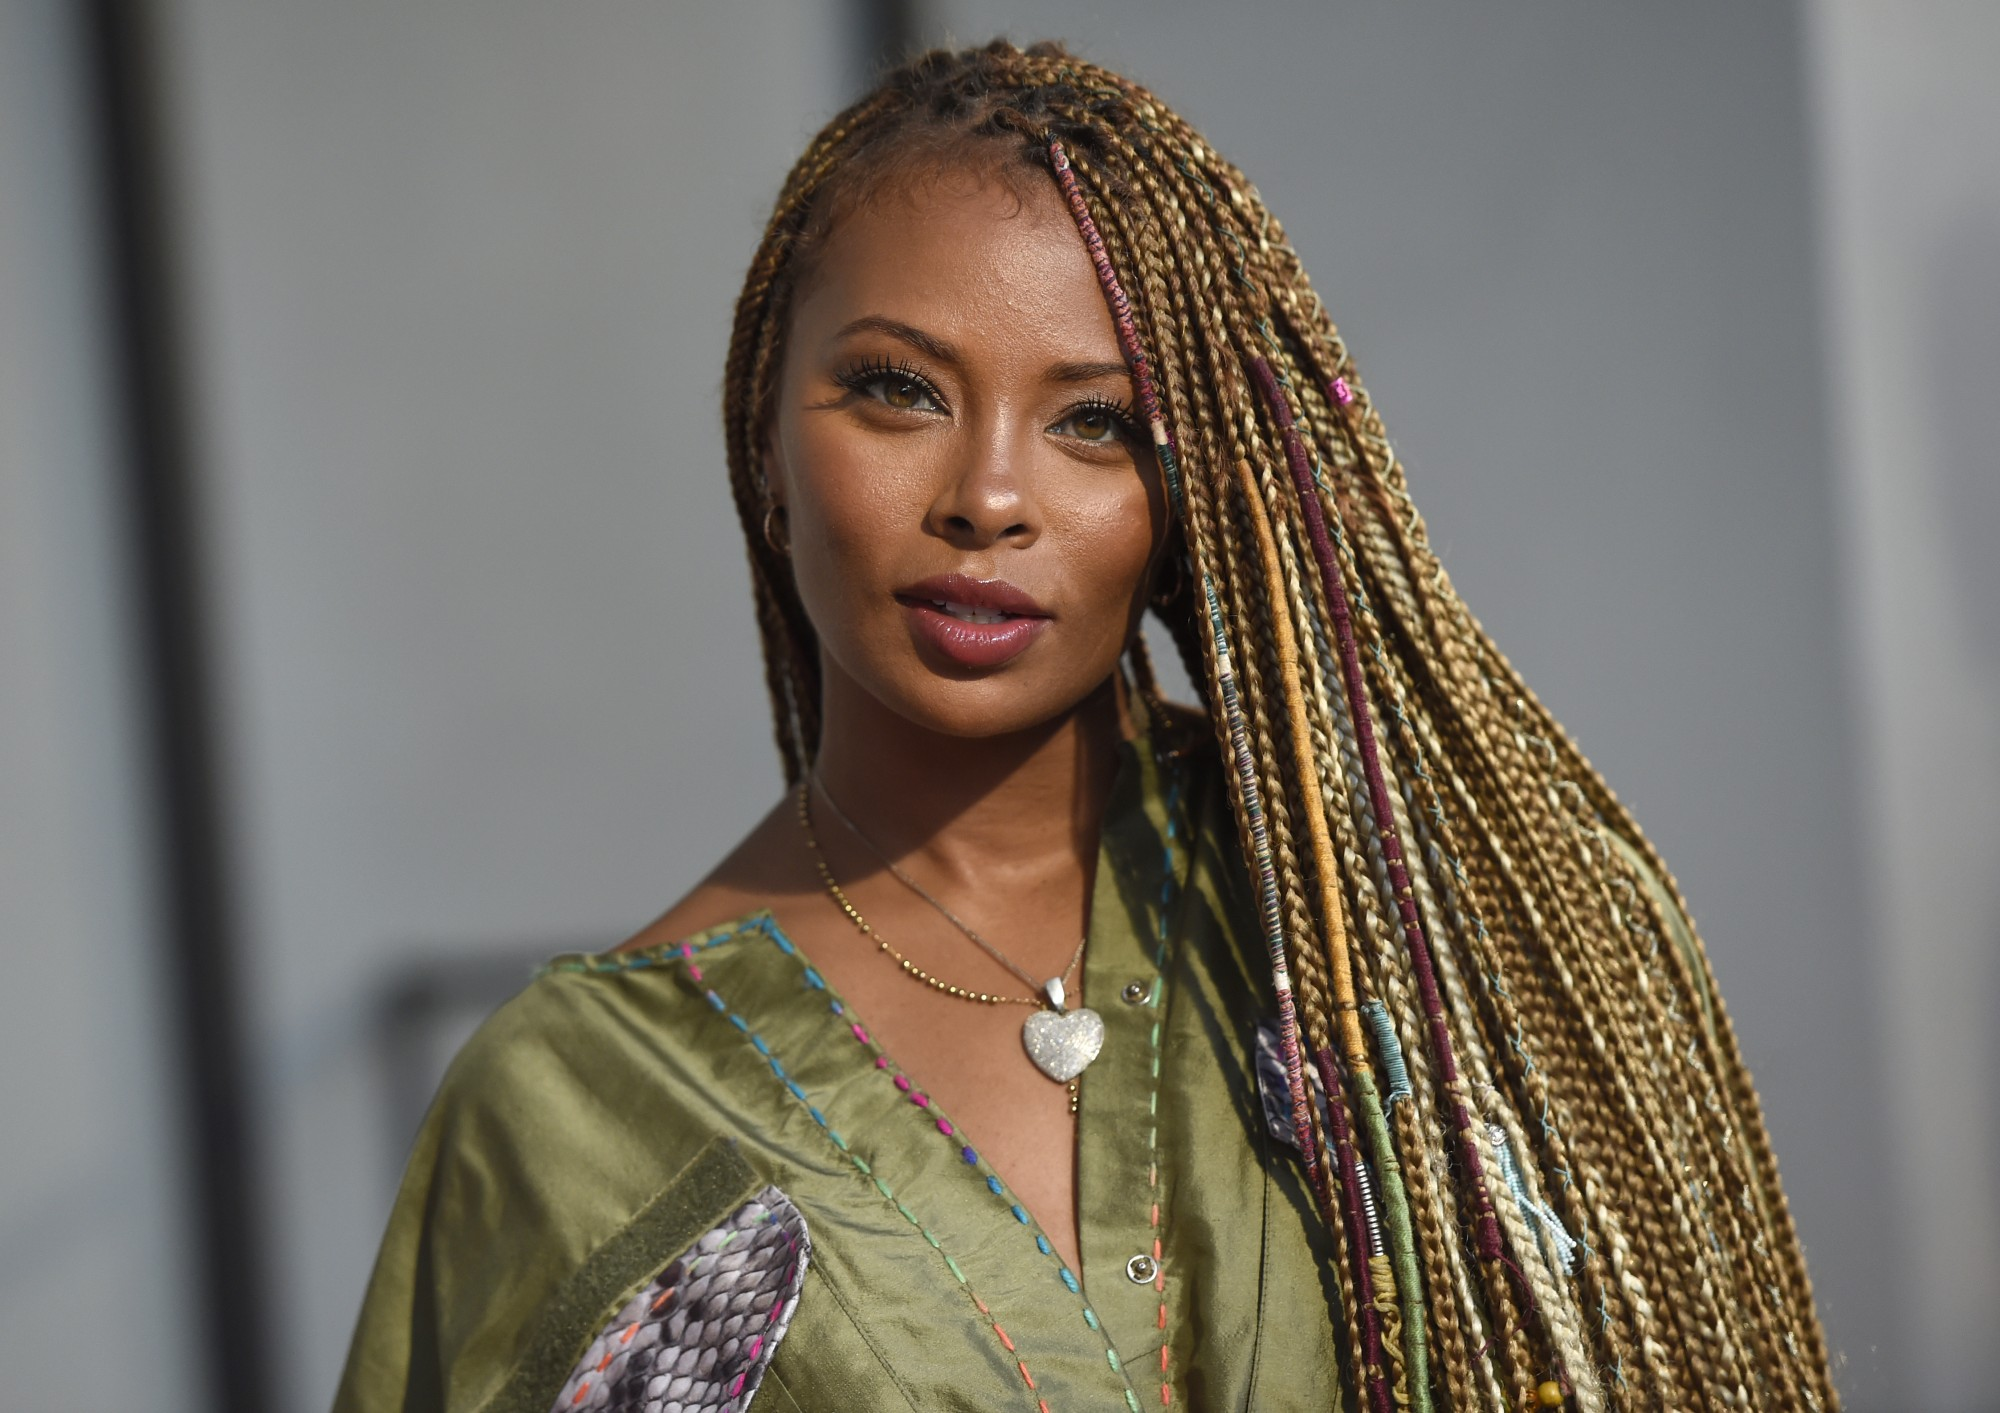 Eva Marcille Addresses The Beonna Taylor Case On Social Media